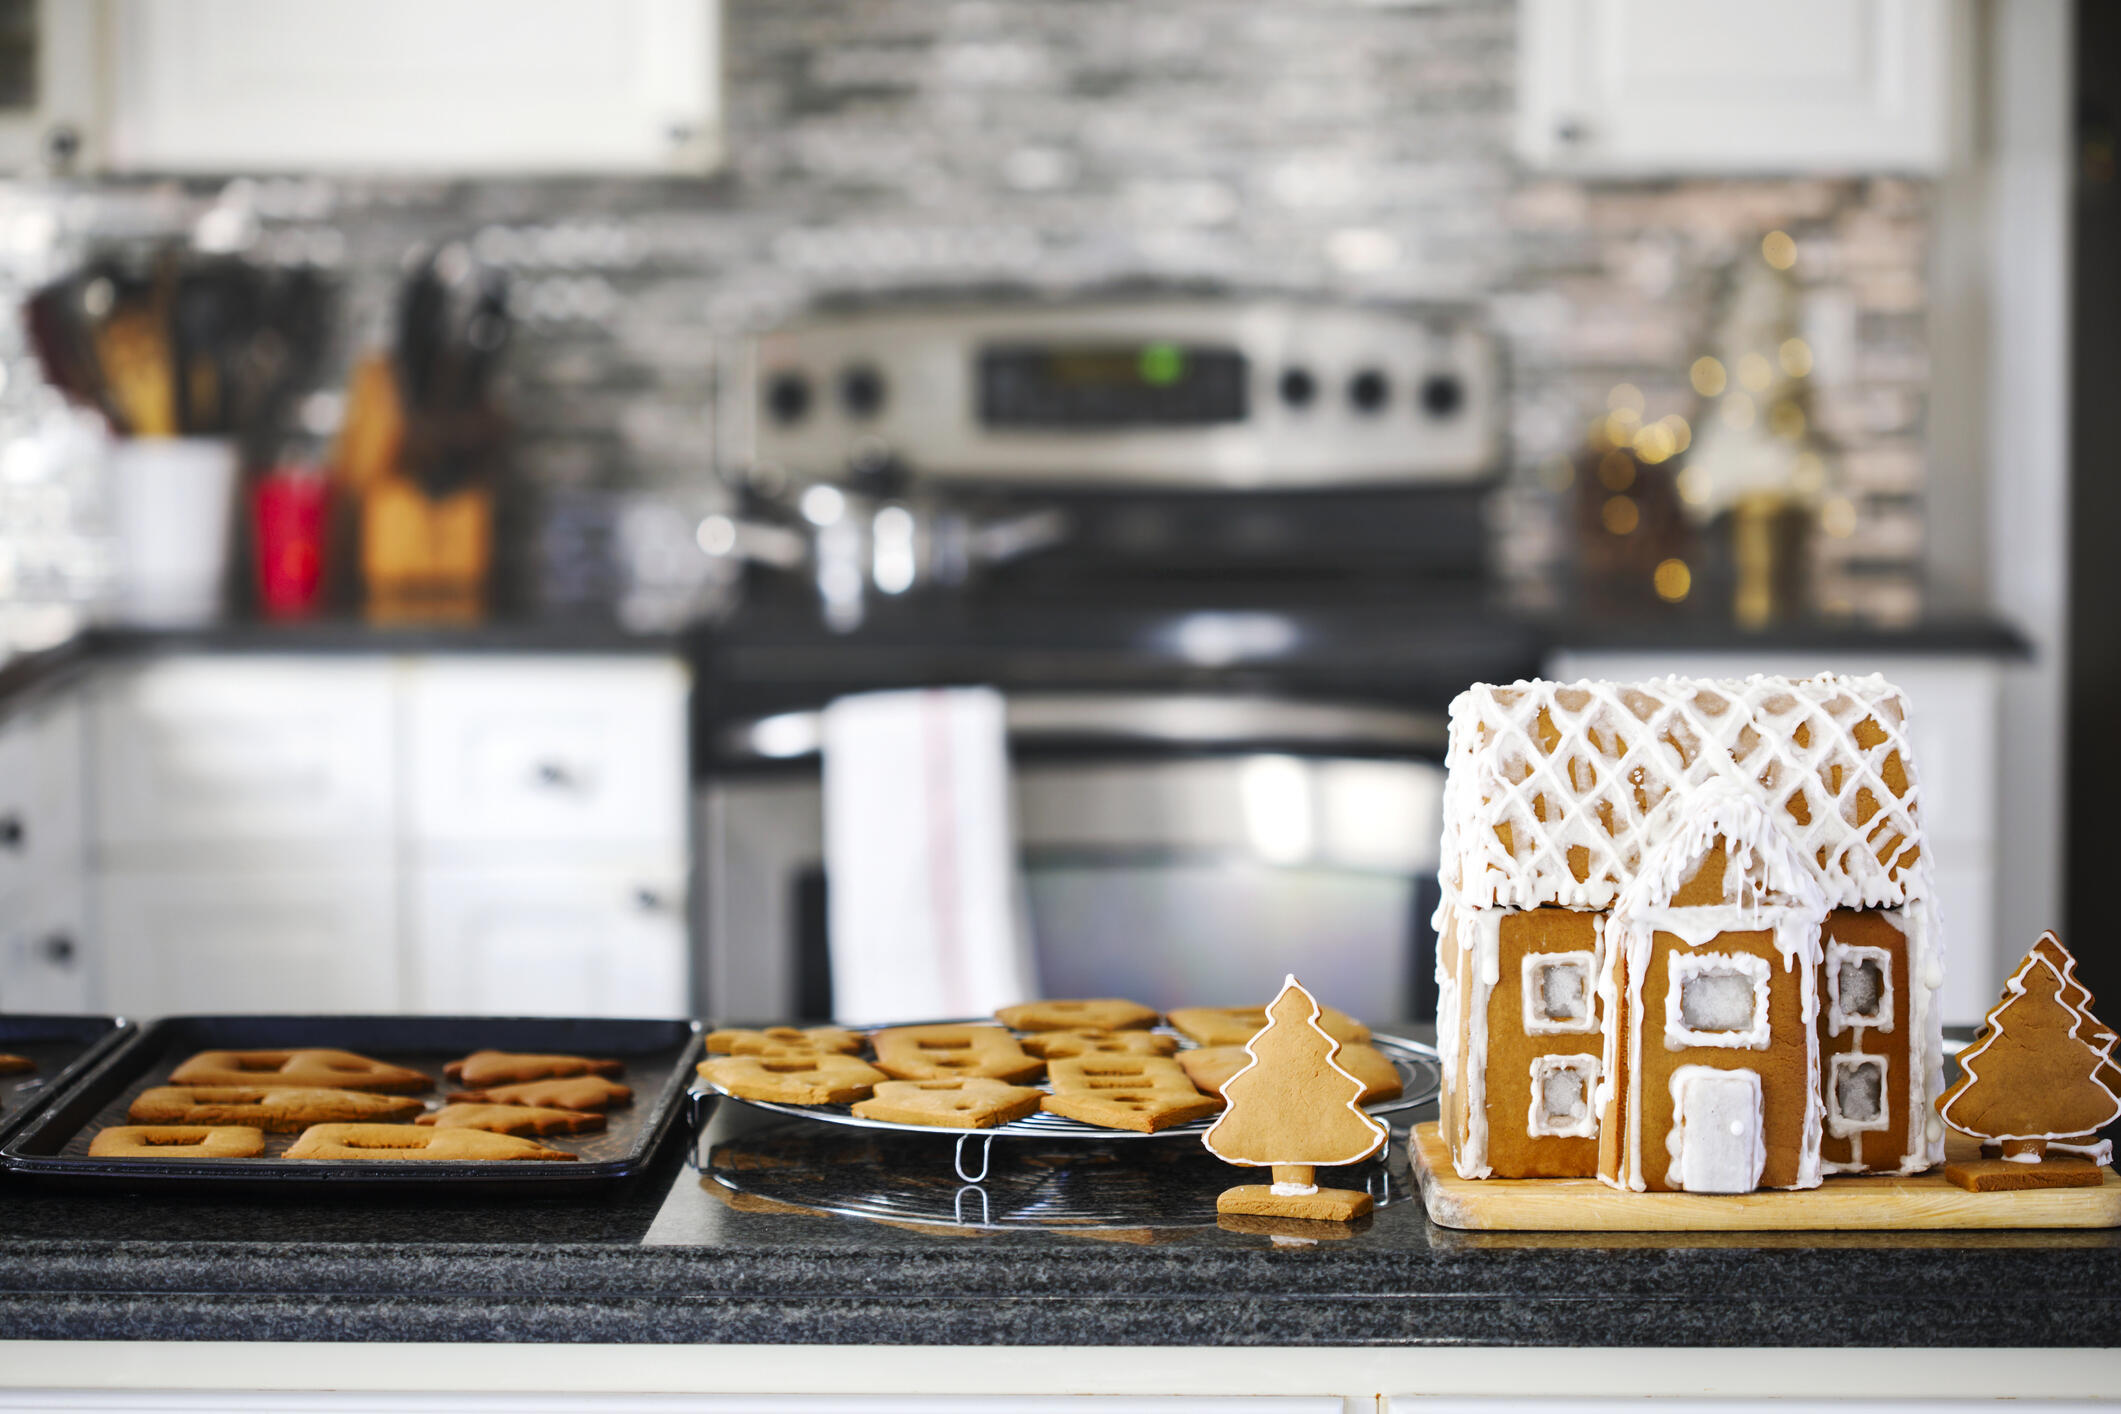 Gingerbread house and cookies on a kitchen counter.